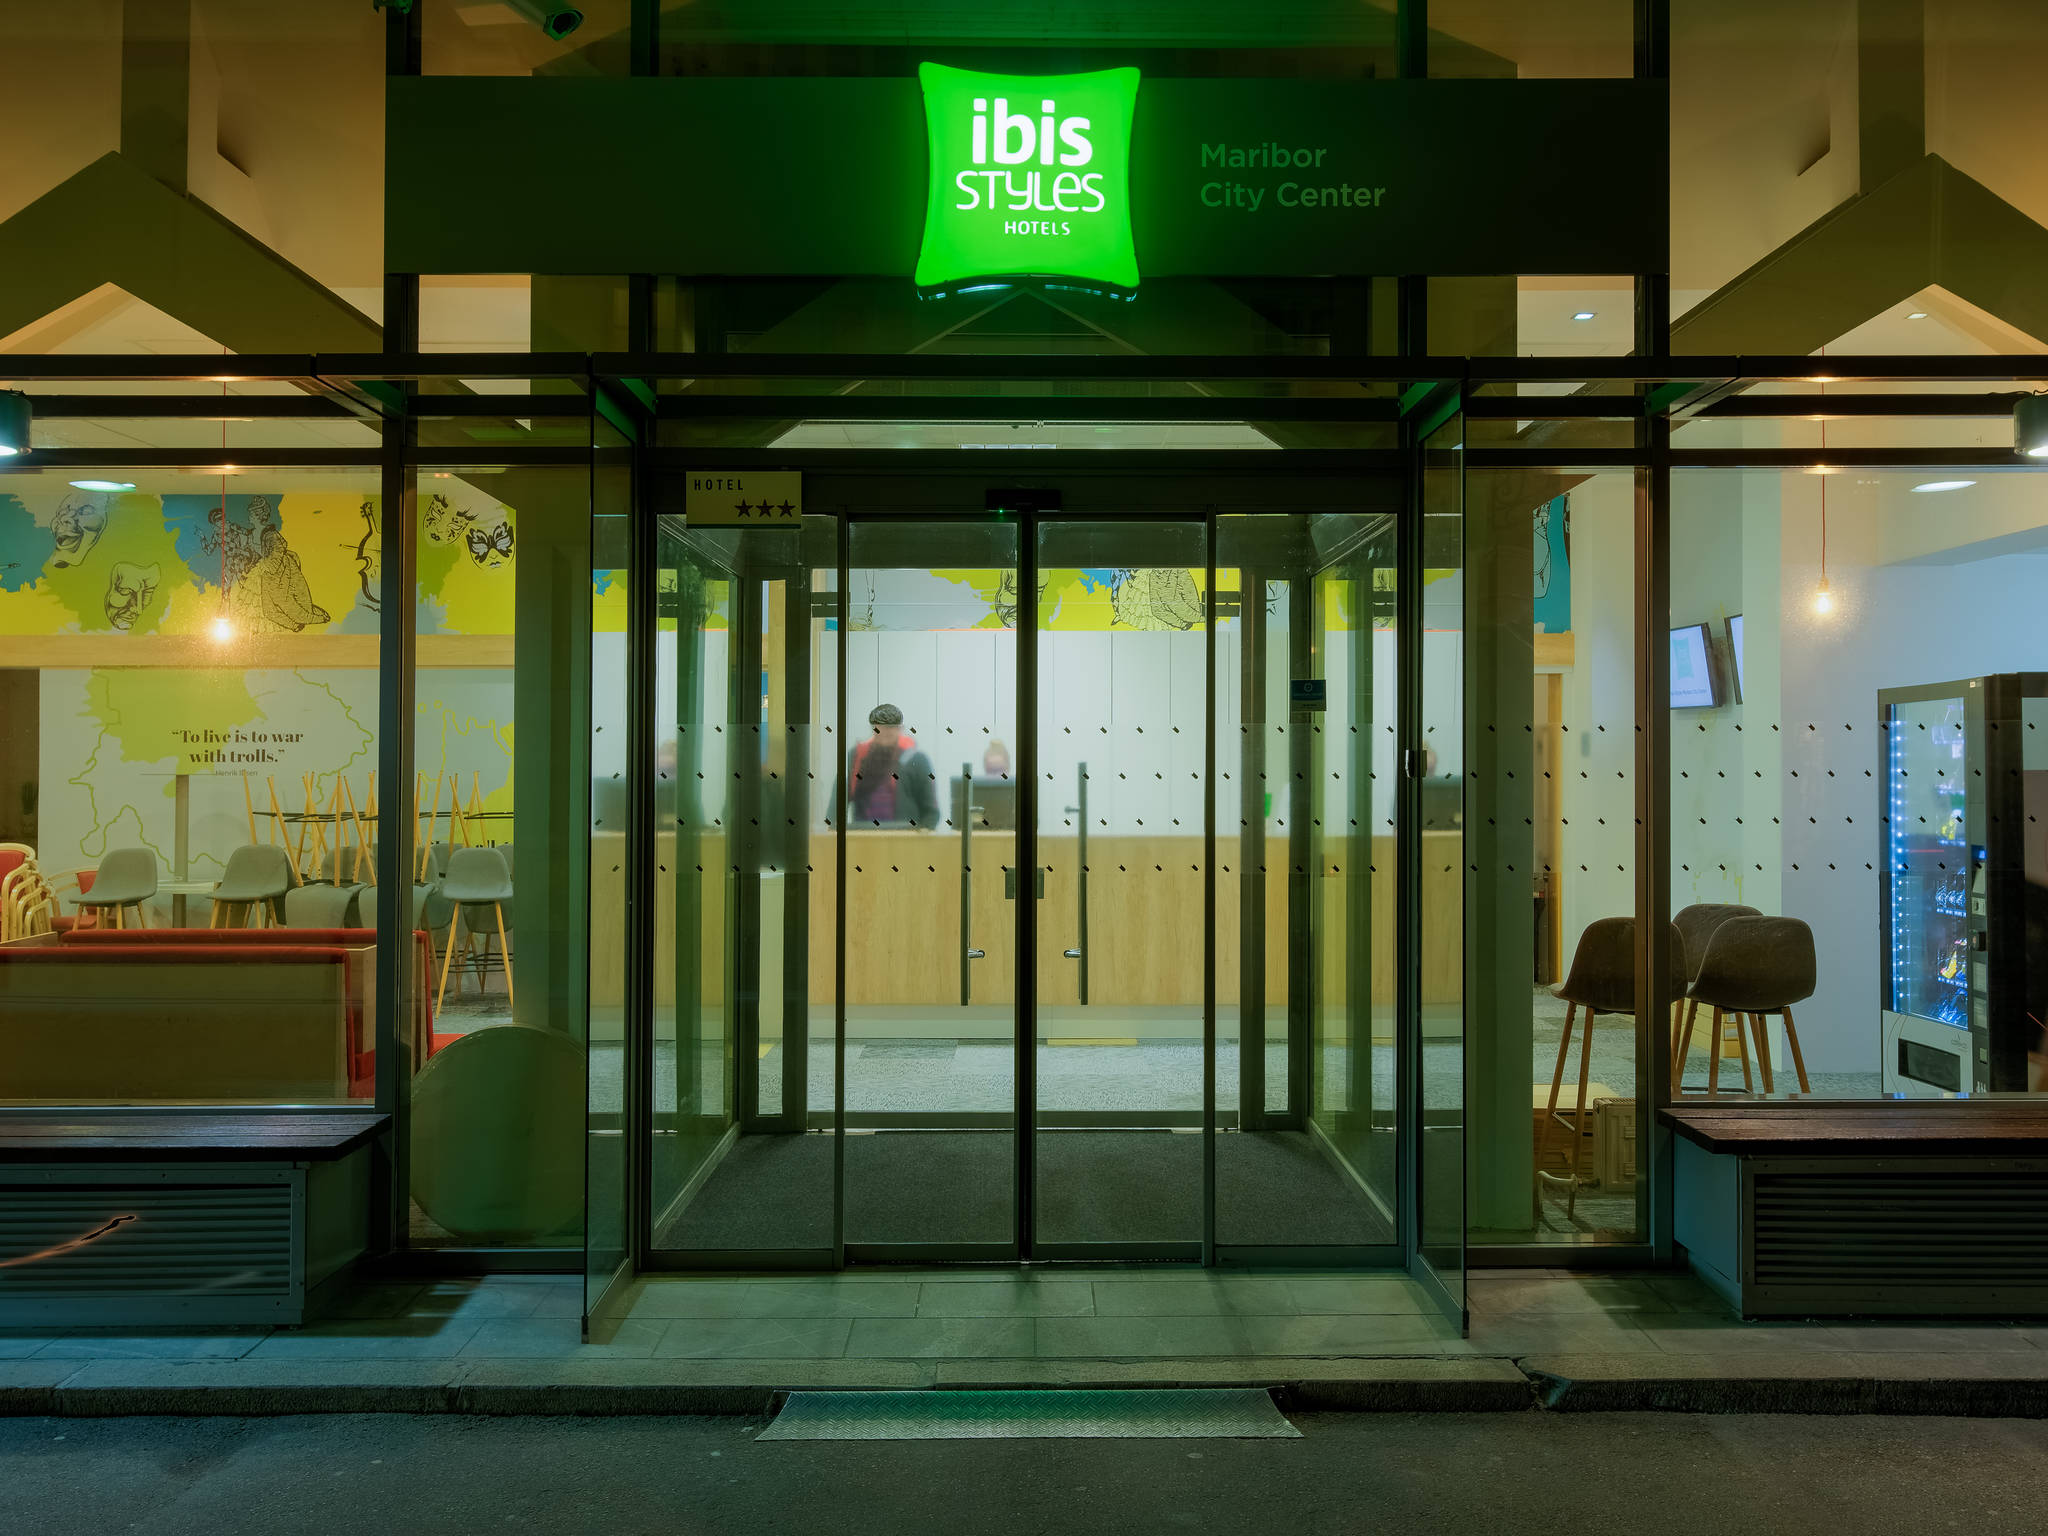 Hotel – Ibis Styles Maribor City Center